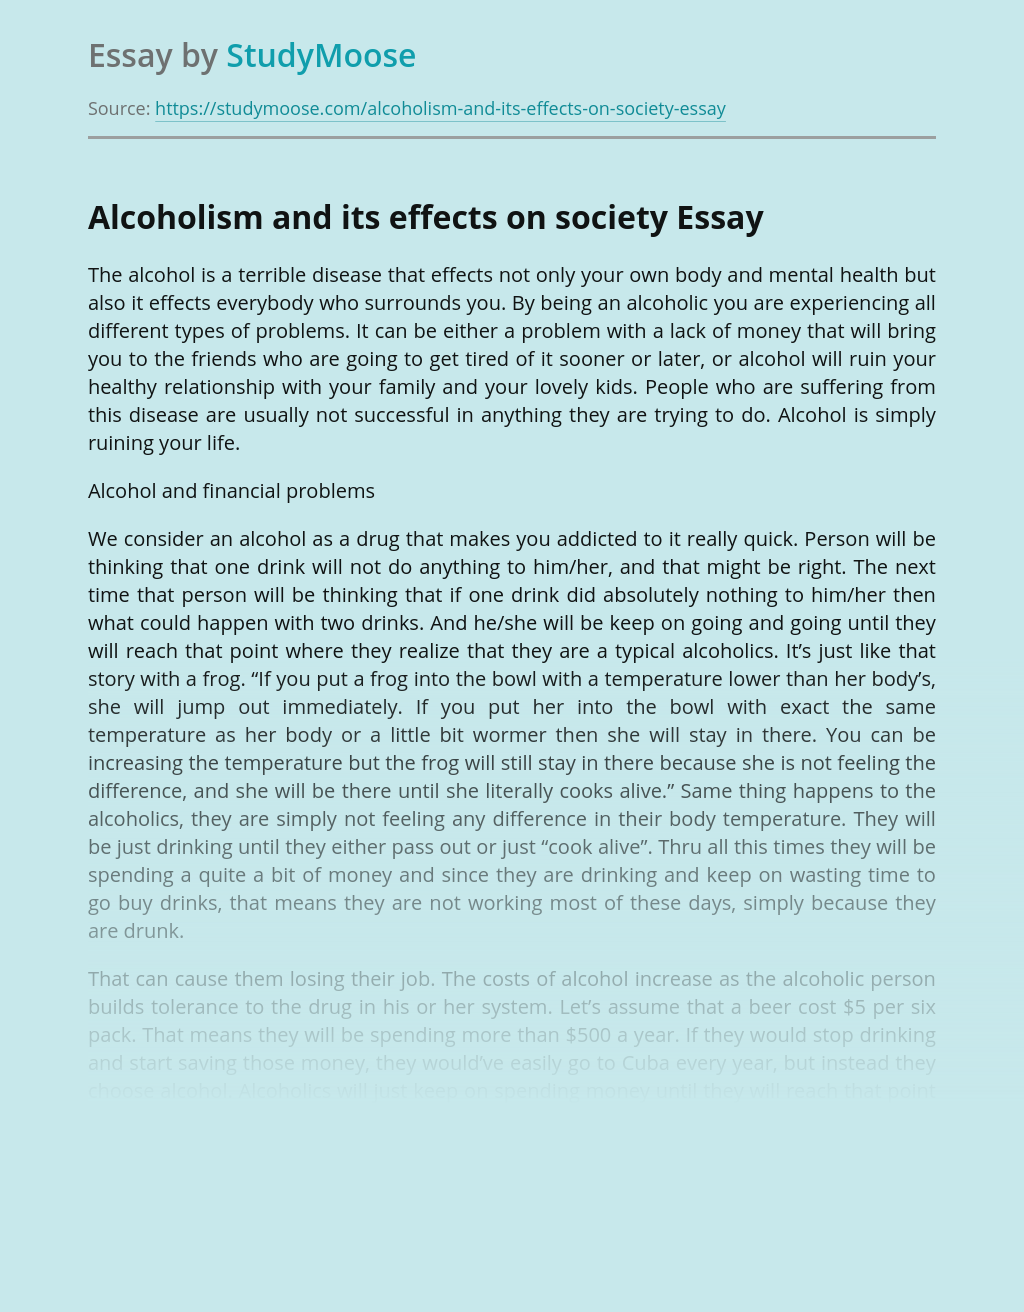 Alcoholism and its effects on society